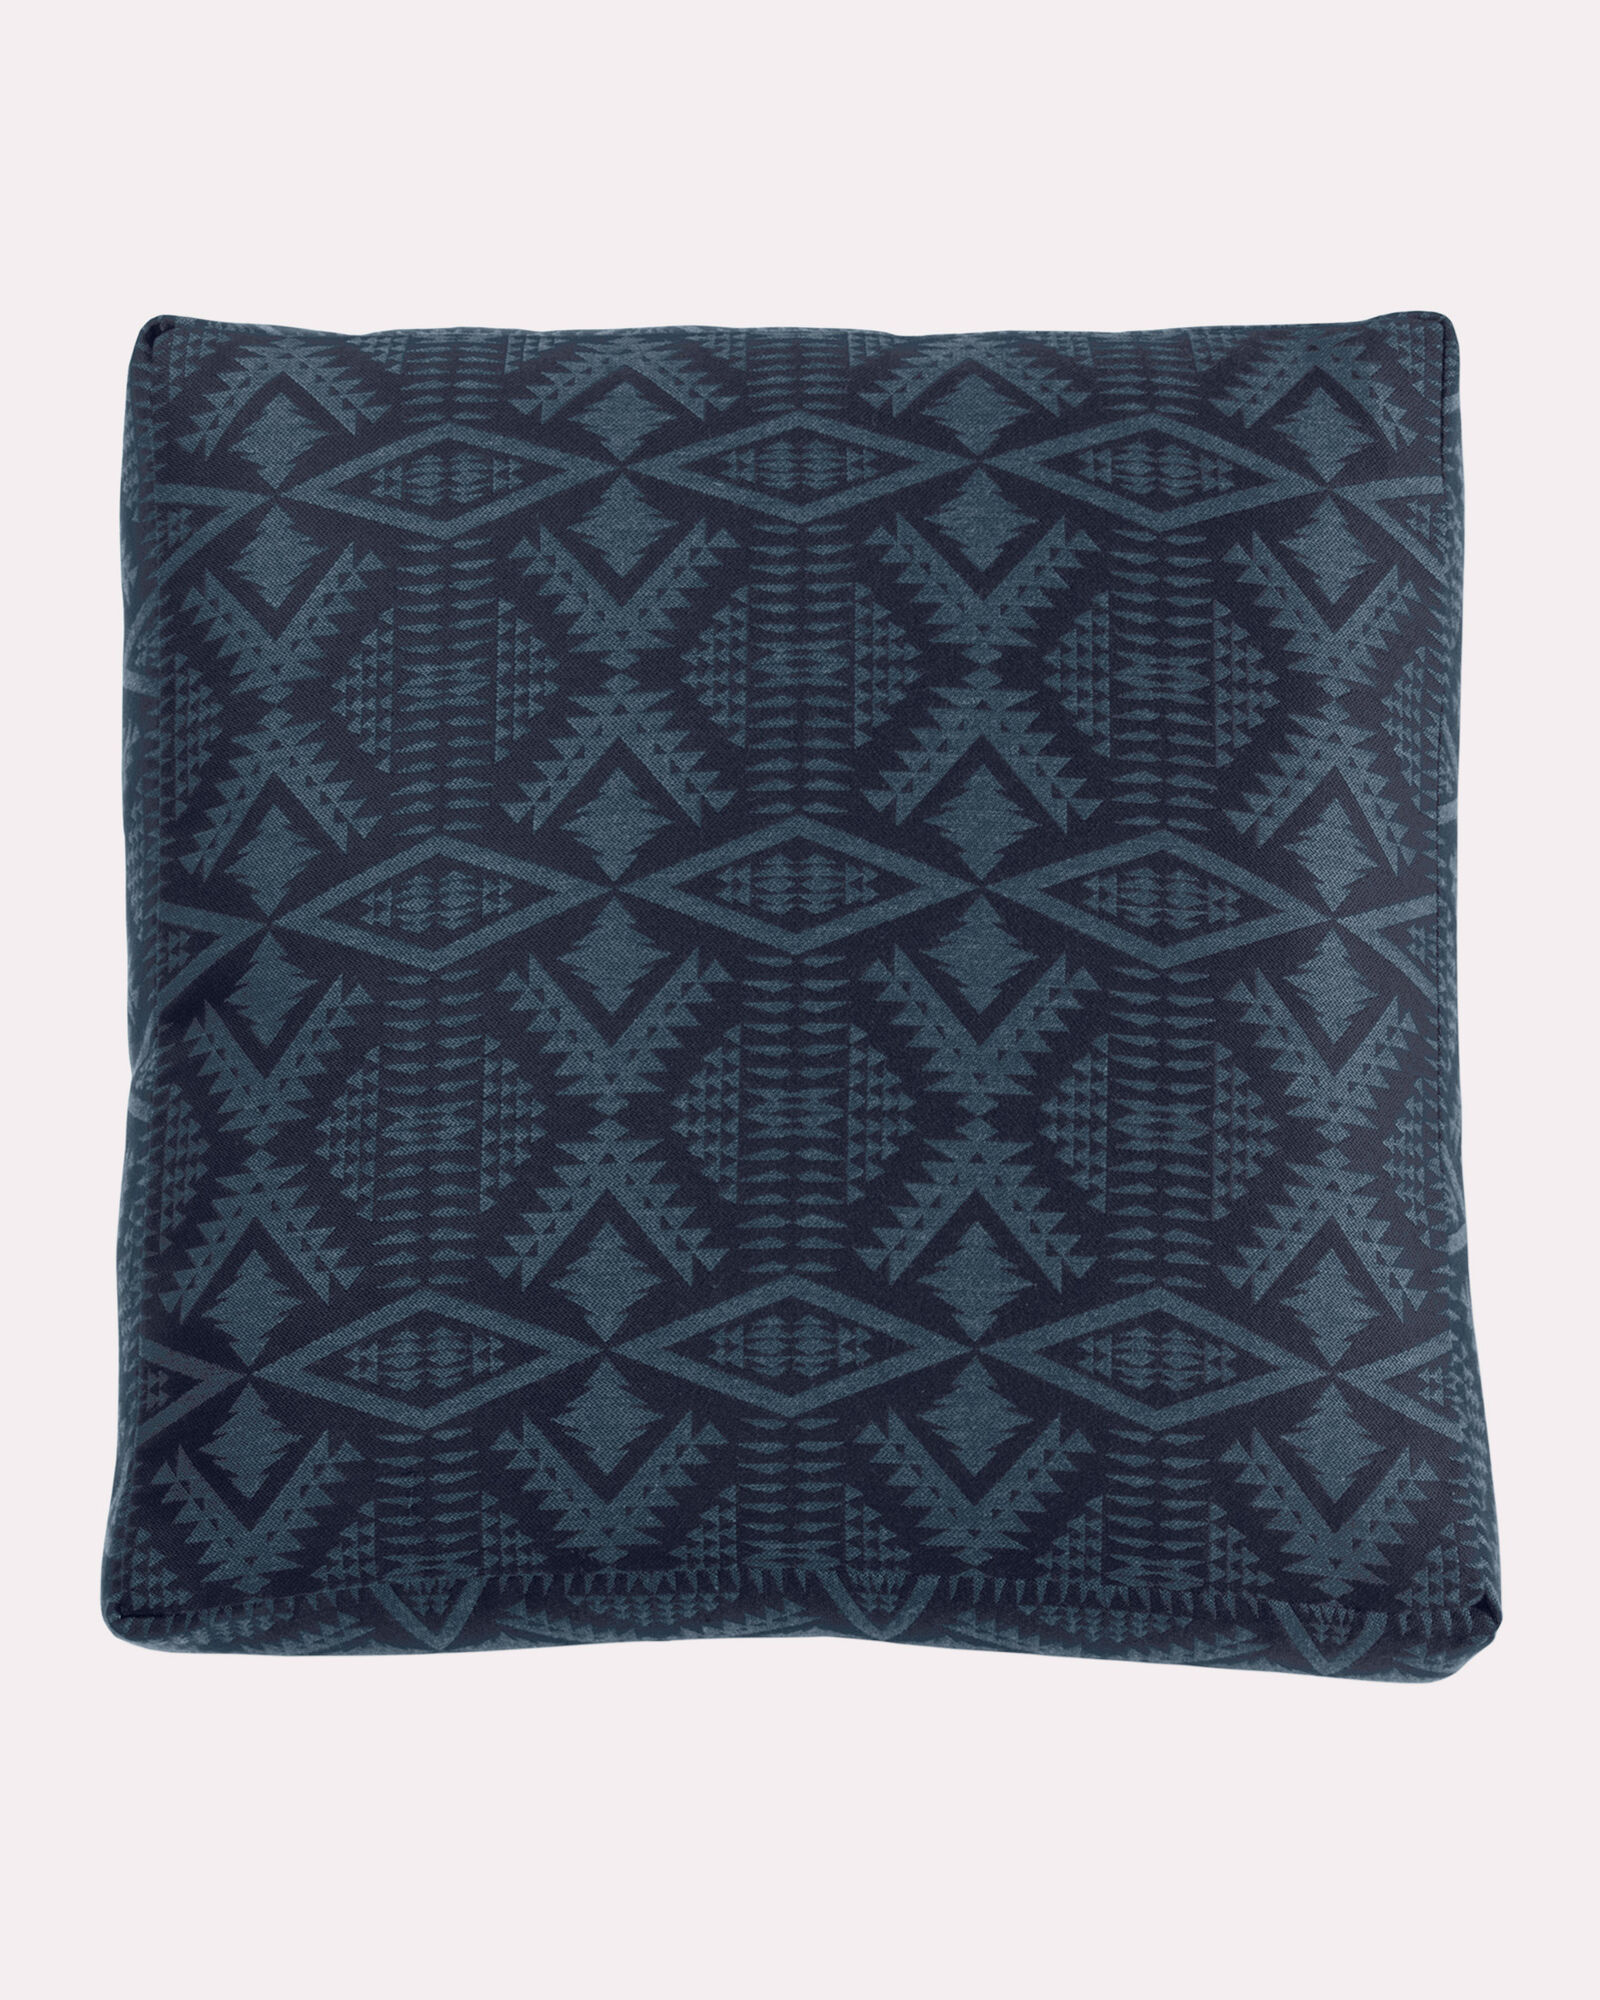 PENDLETON BY SUNBRELLA FLOOR CUSHION Pendleton